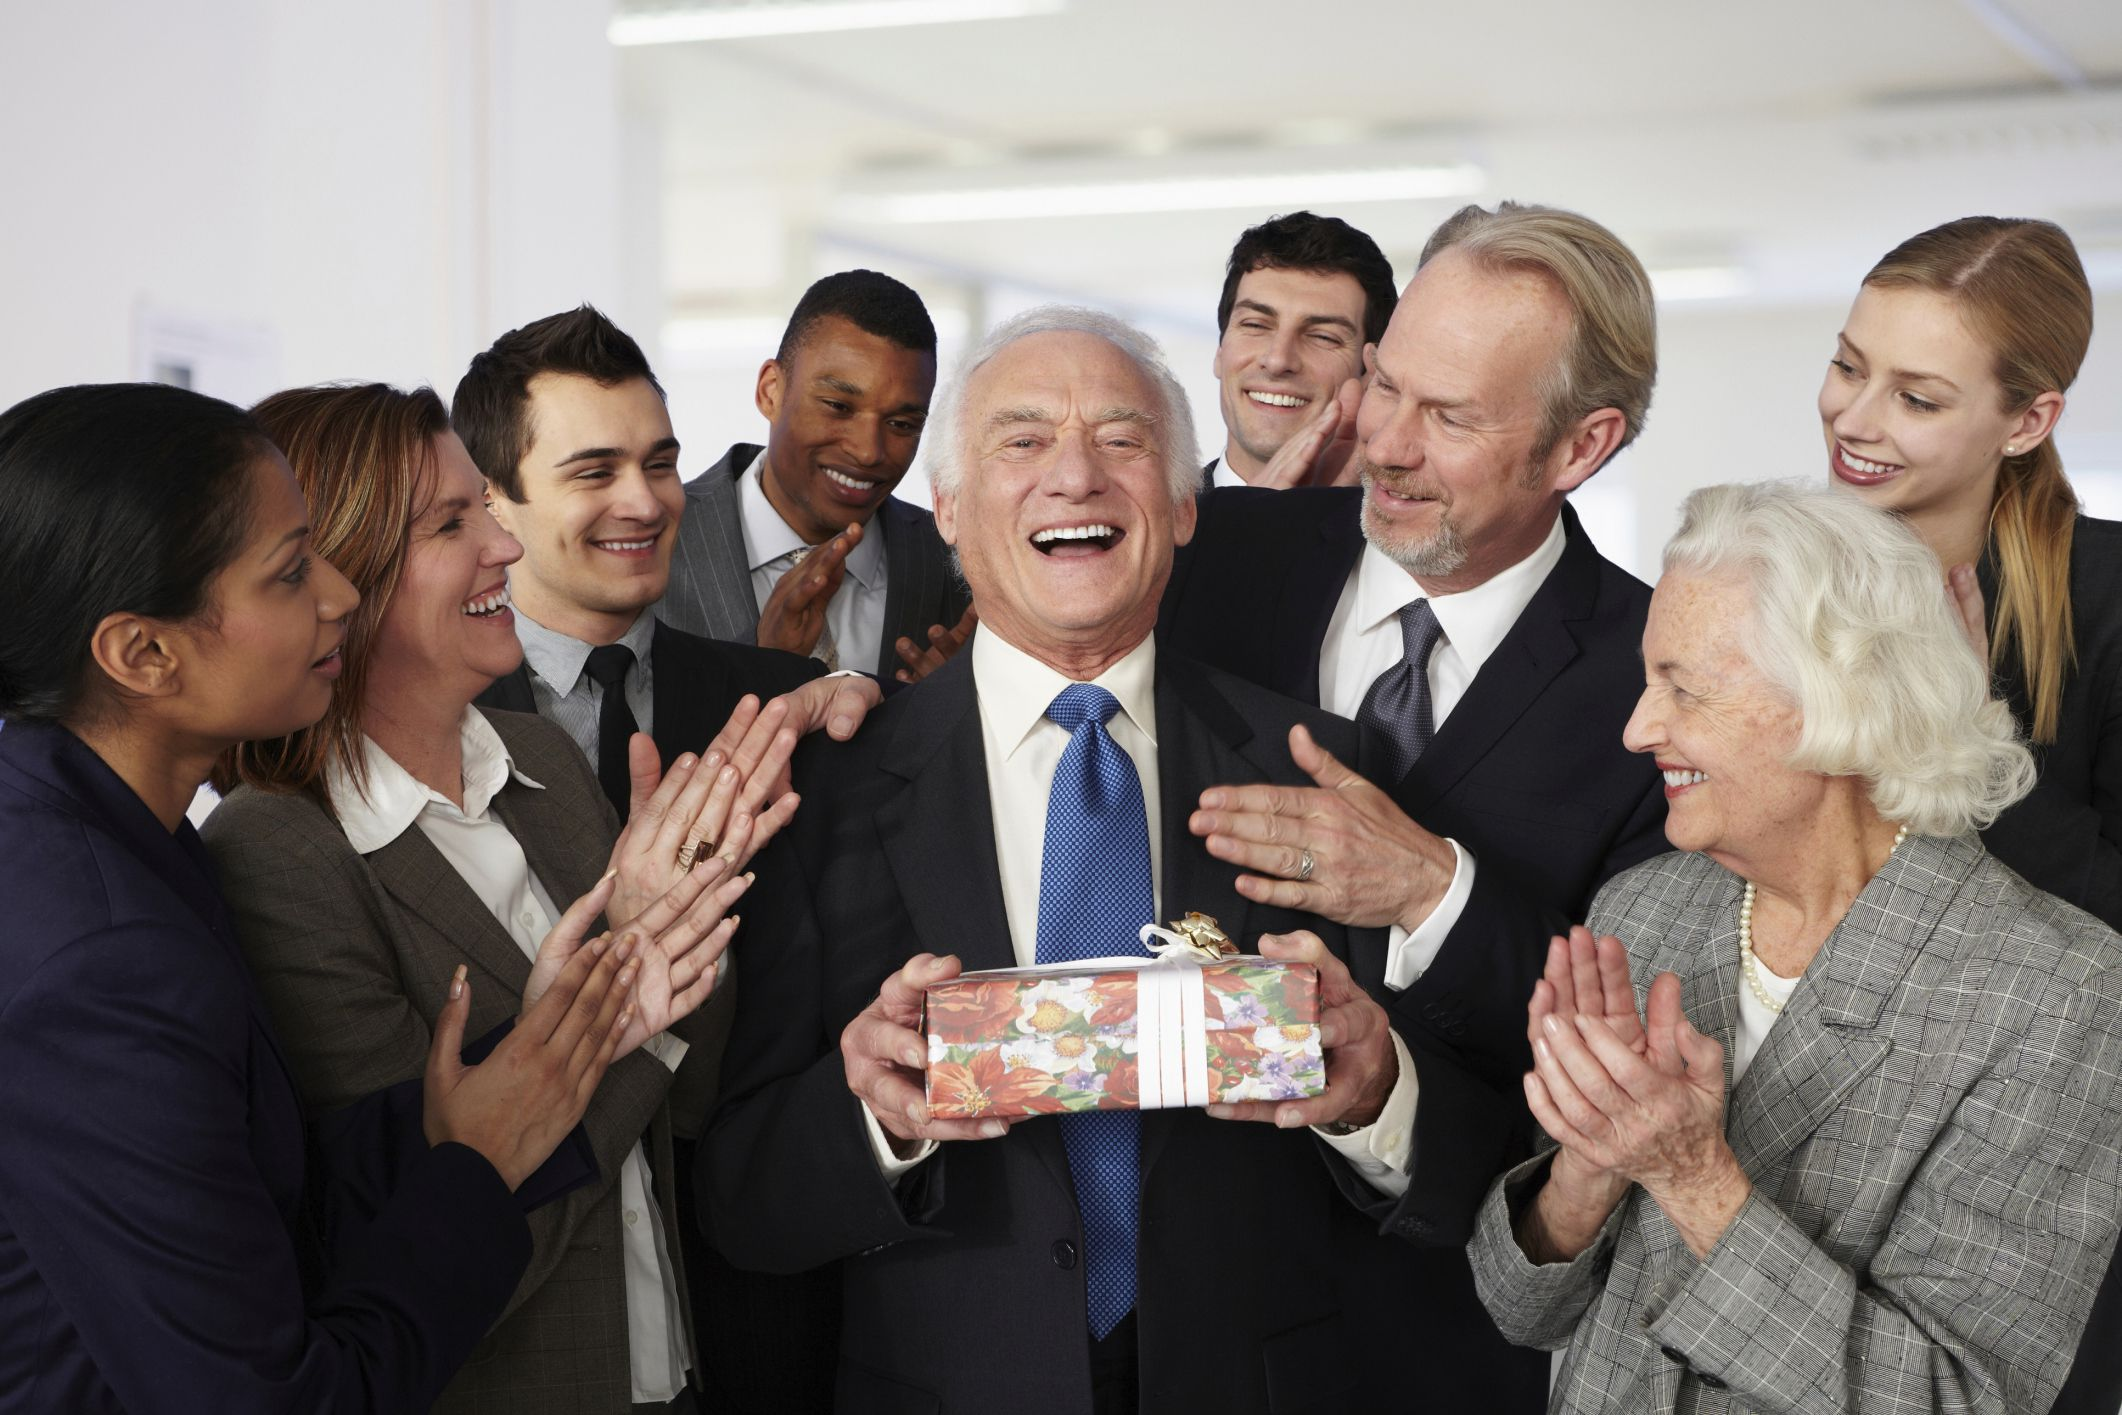 gift giving in the business world